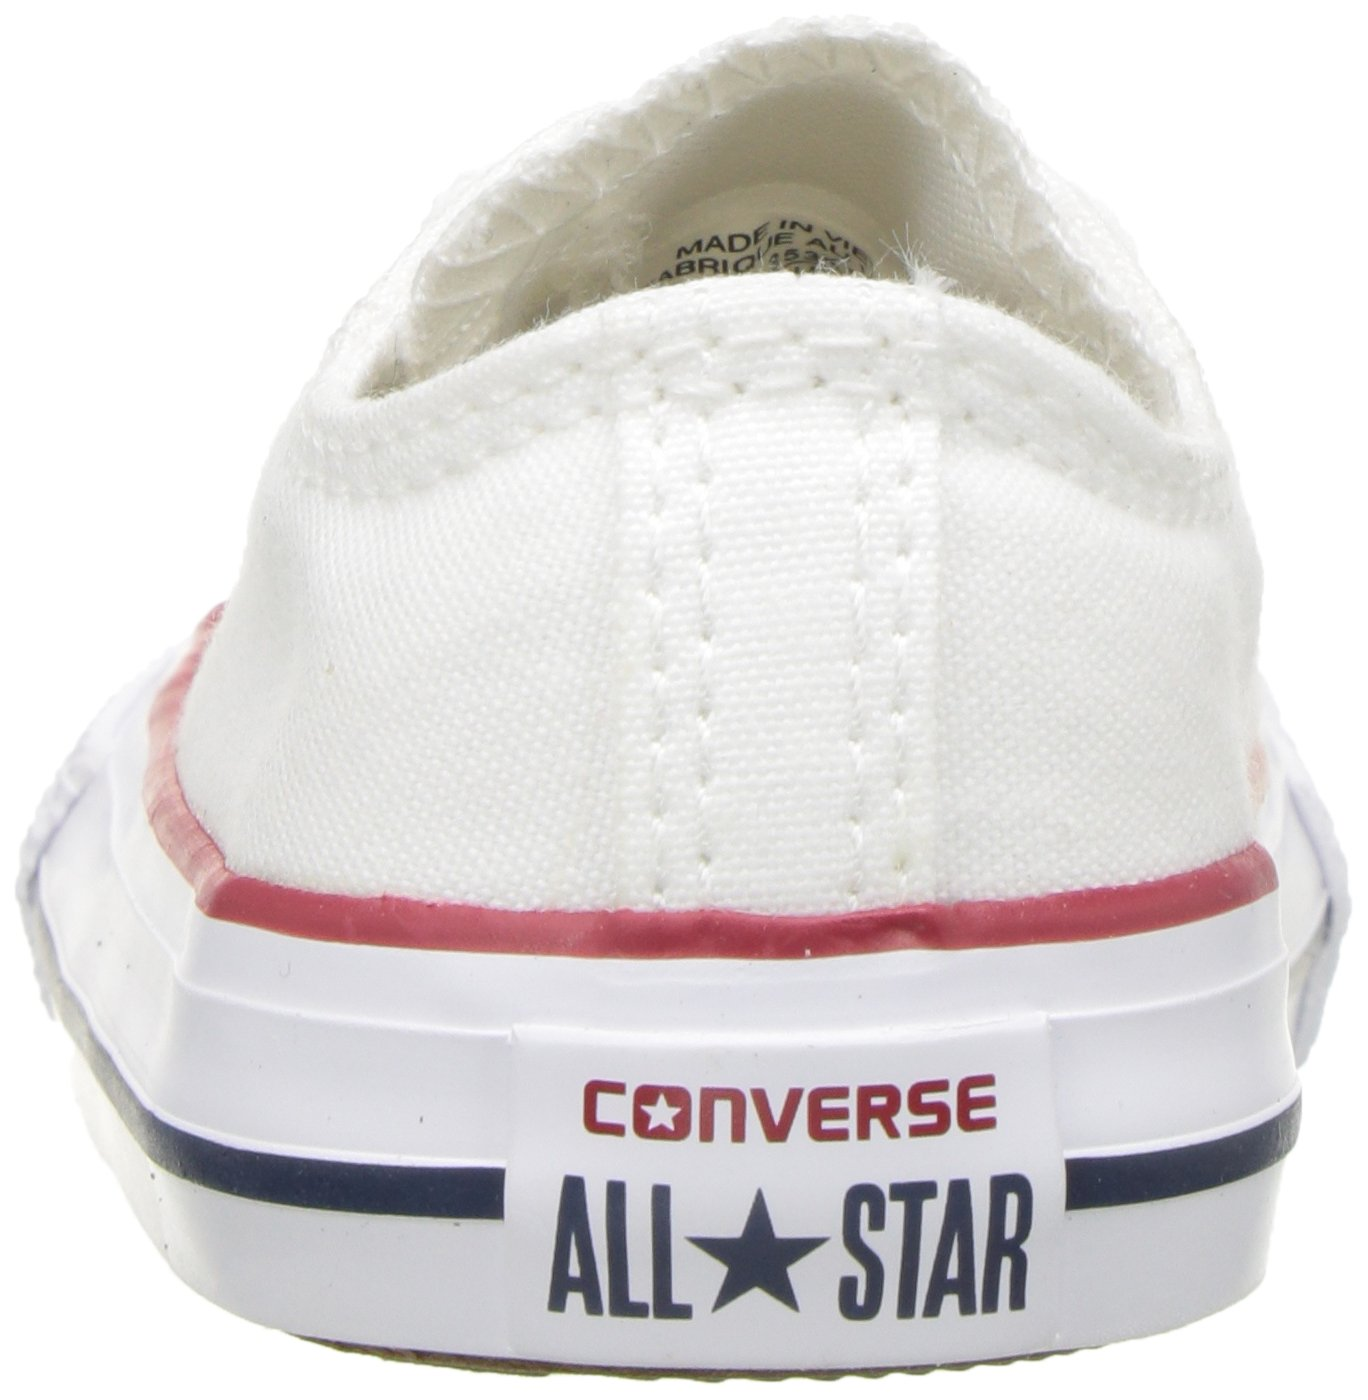 Converse Chuck Taylor All Star Canvas Low Top Sneaker, Optical White, 13.5 M US Little Kid by Converse (Image #2)